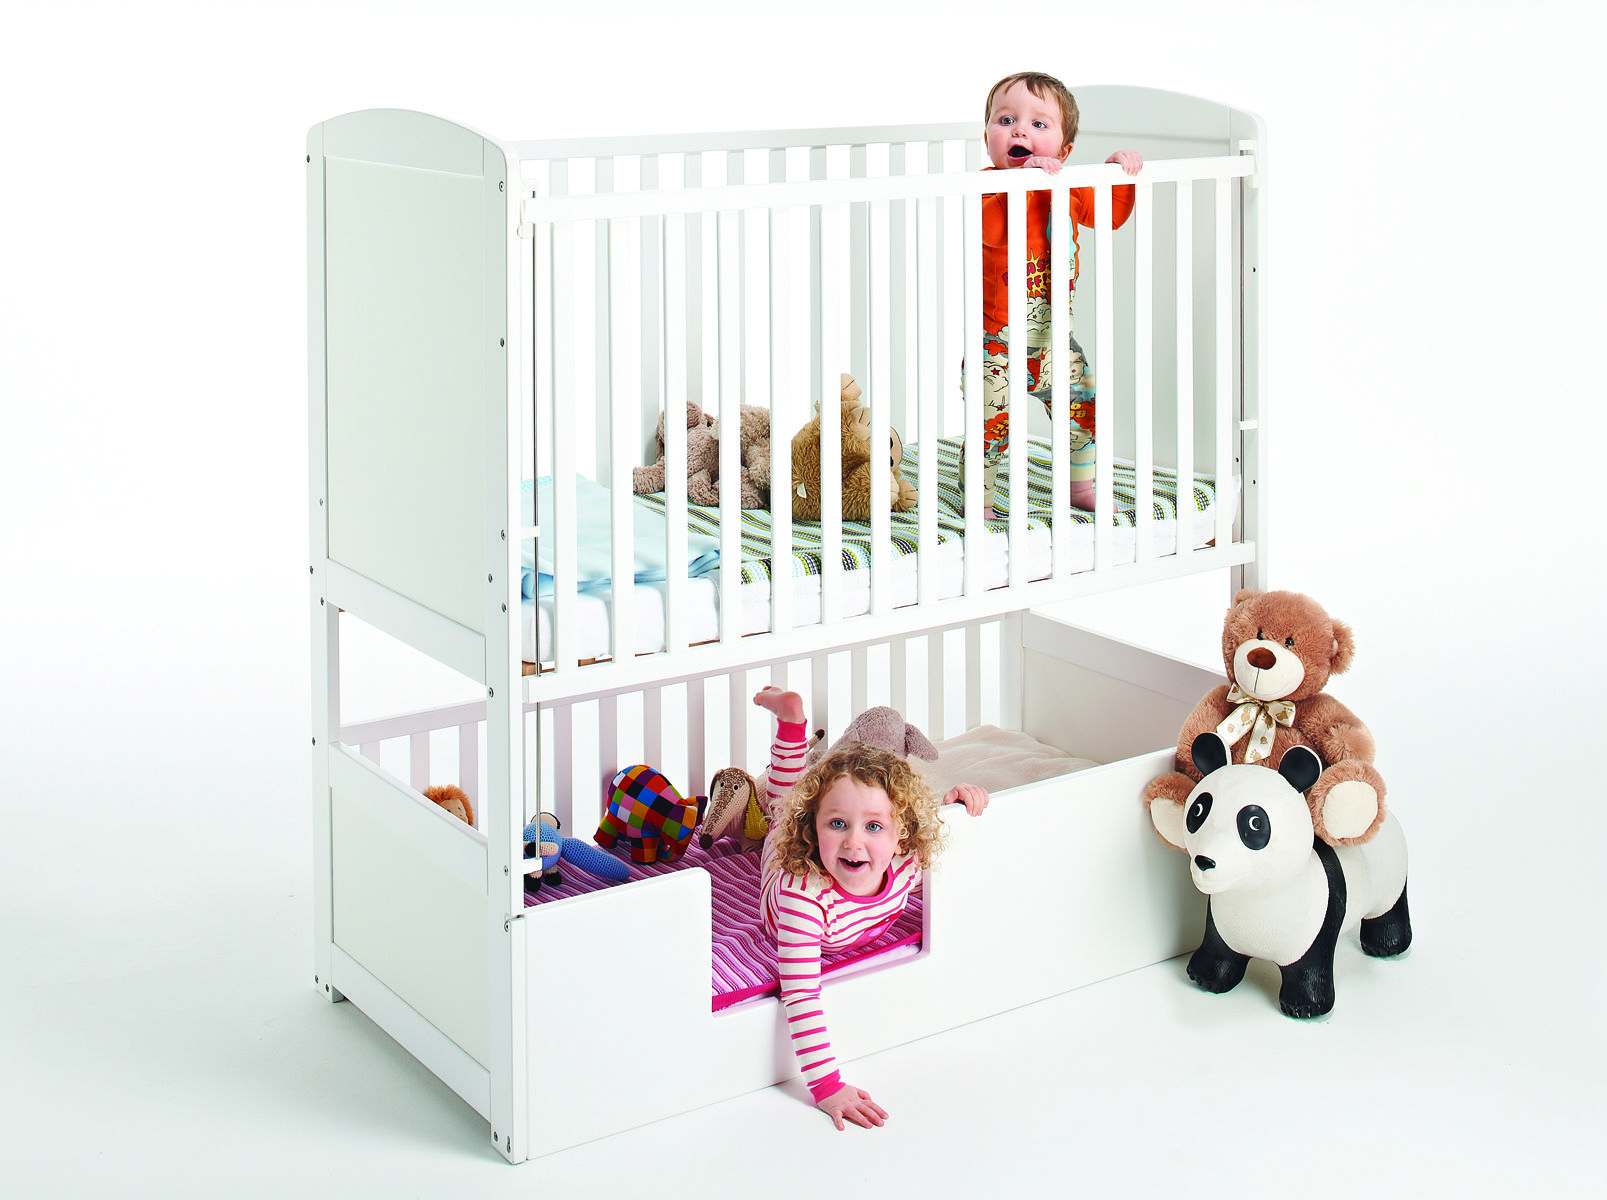 Now Available In Australia The Convertible Bunk Cot Developed In The Uk For Children 0 6 Years 2 Bunk Cots 1 Cot Baby Bunk Beds Baby Cribs Toddler Bunk Beds